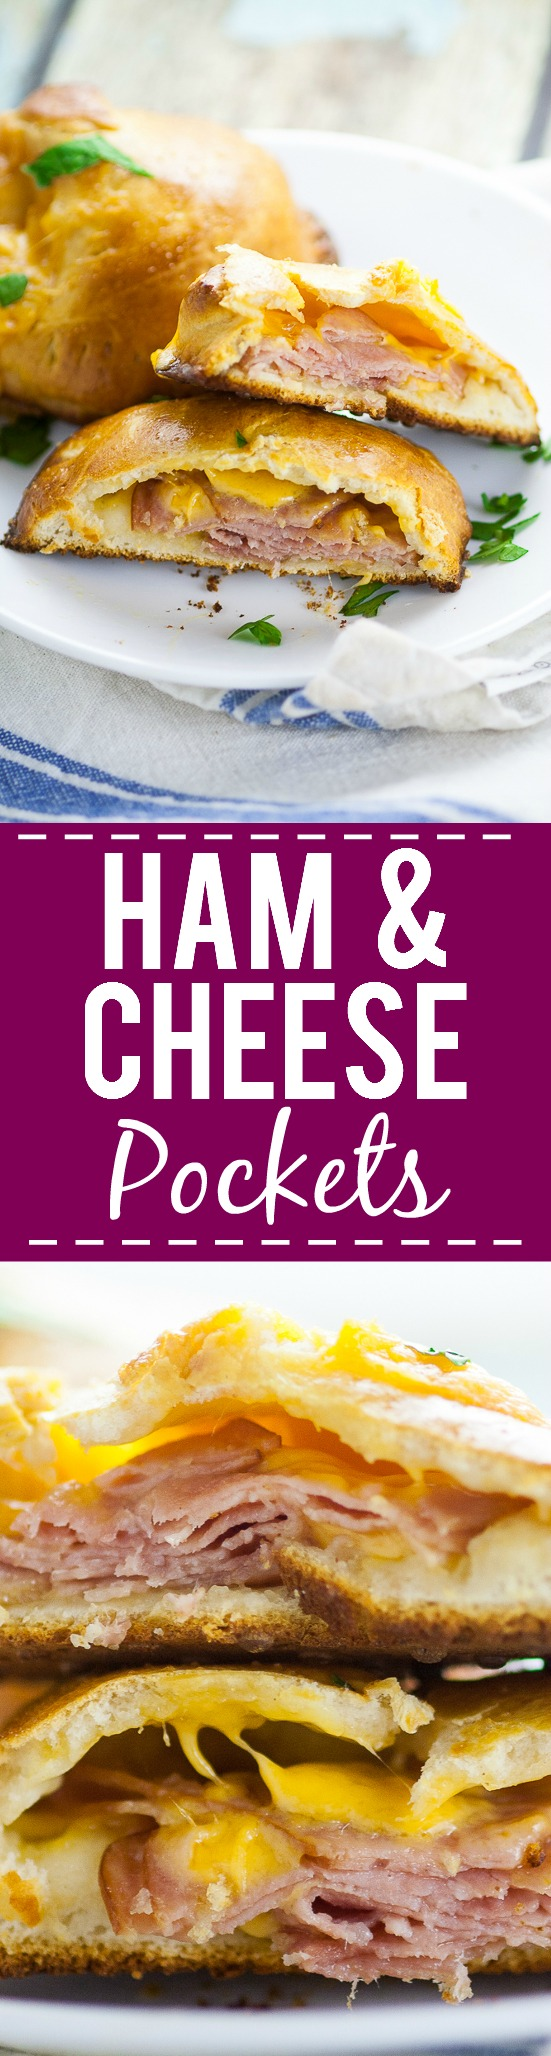 Ham and Cheese Pockets Recipe -For a quick and easy, on-the-go meal make these yummy, cheesy Ham and Cheese Pockets with just 5 ingredients in 30 minutes or less! They're freezer friendly too!